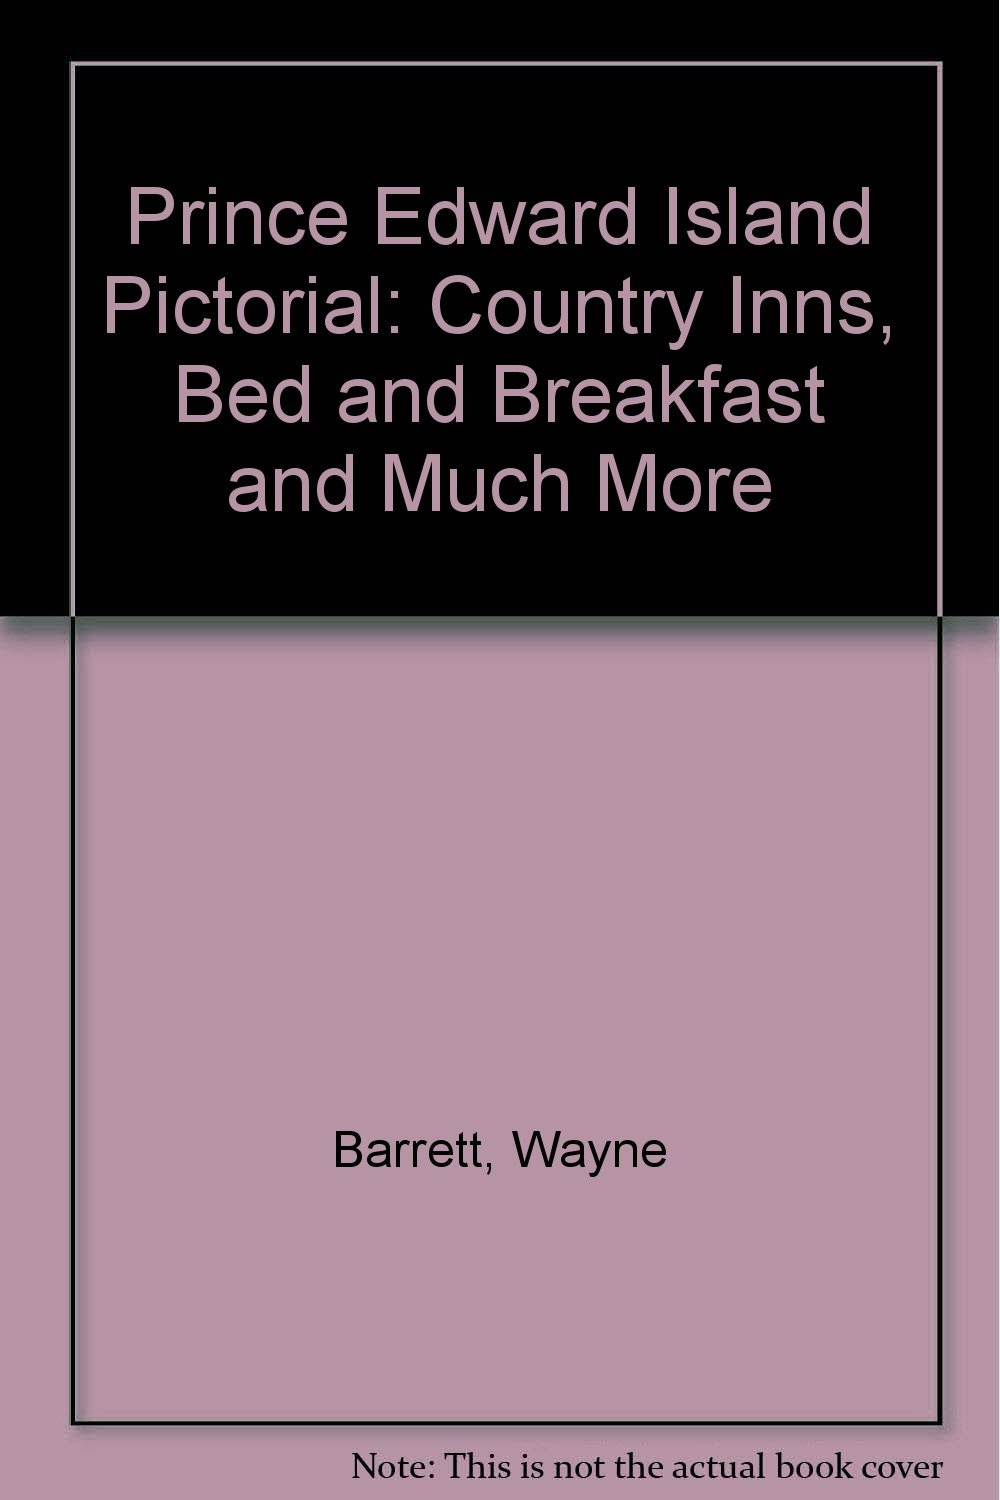 Prince Edward Island Pictorial Country Inns, Bed Breakfast and Much More